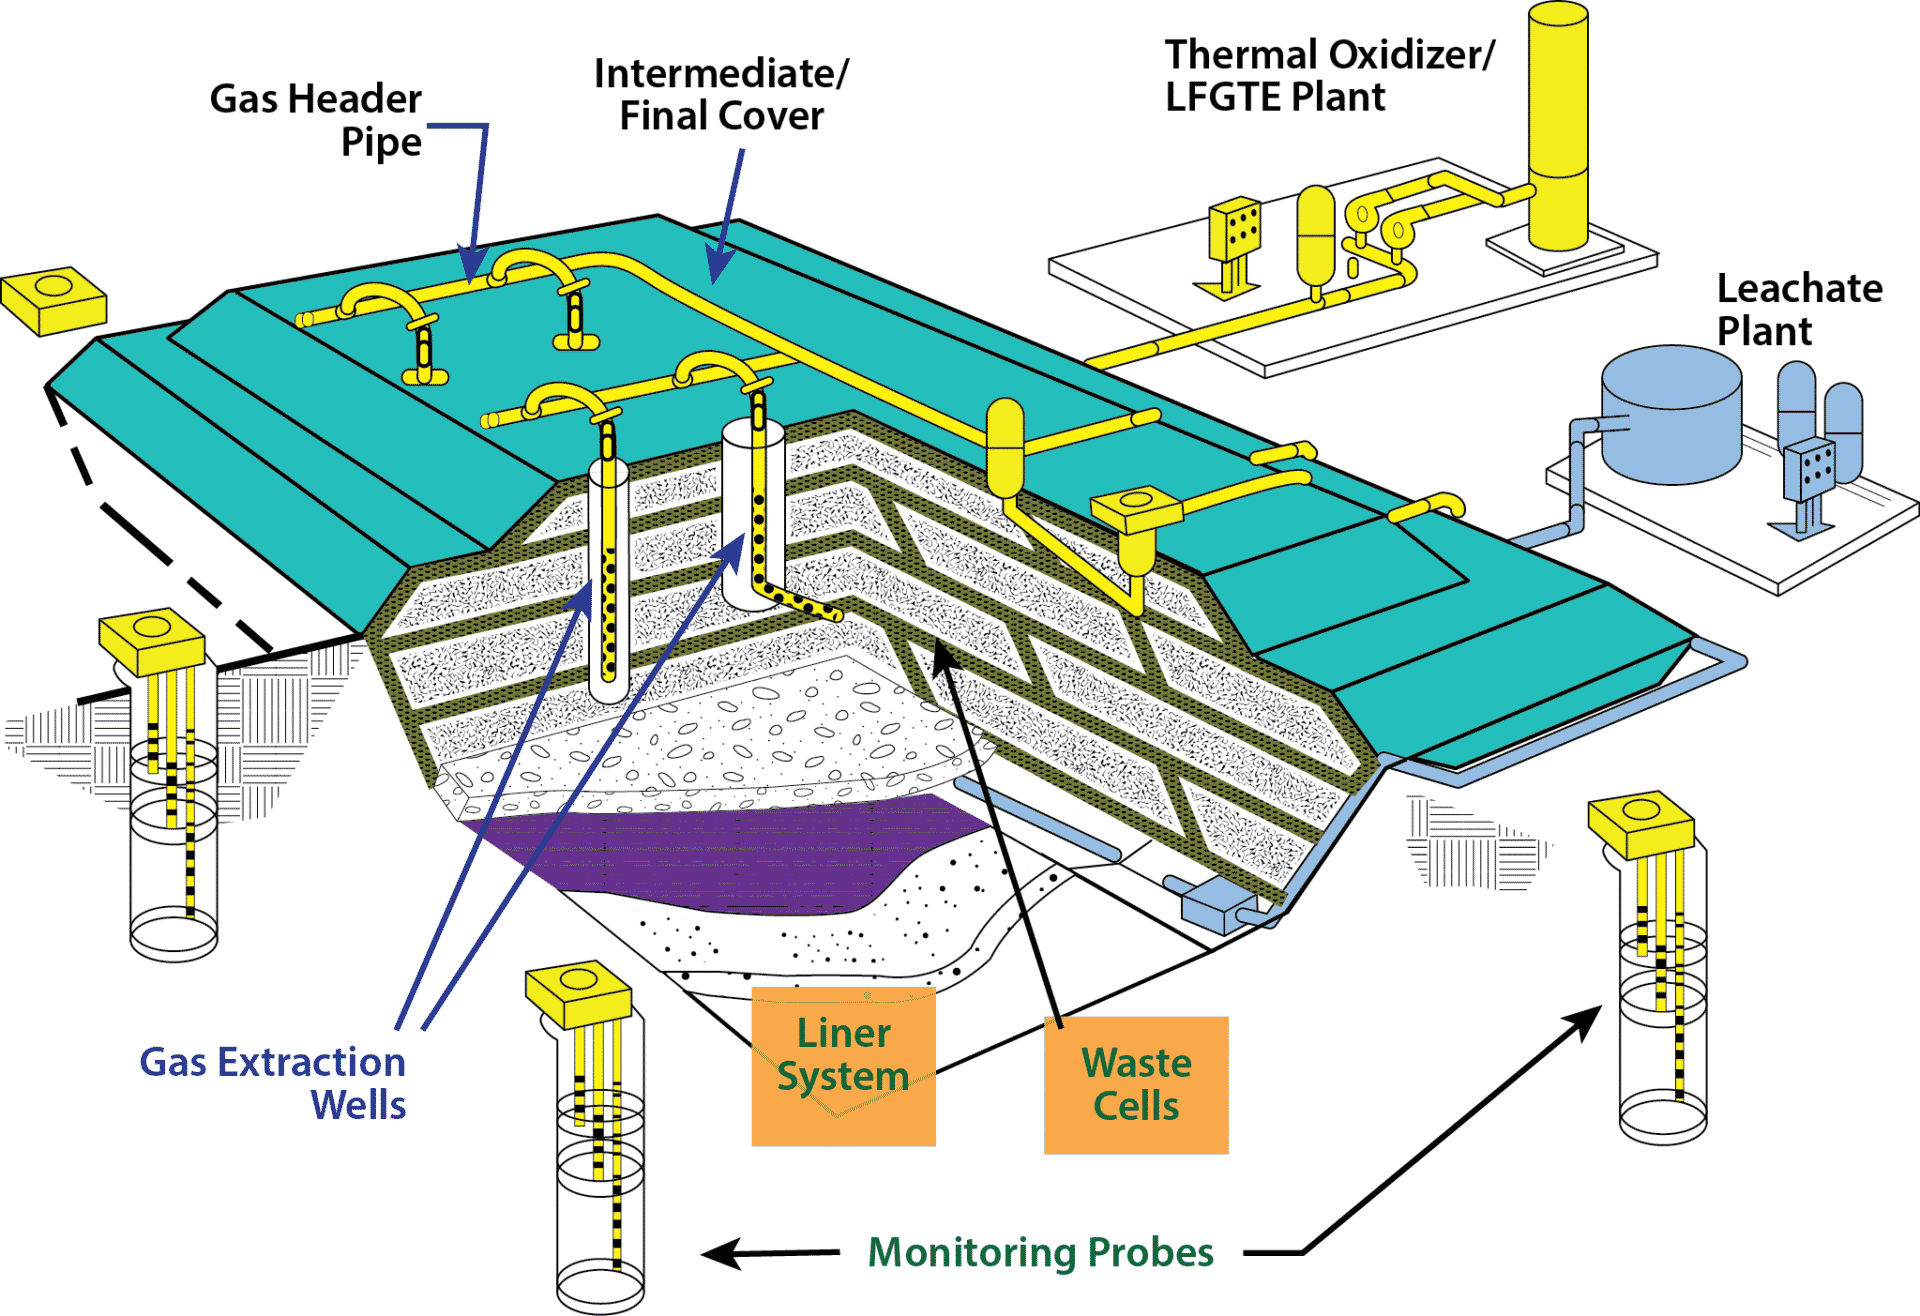 PCC Modern Landfill Diagram, landfill gas thermal oxidizer